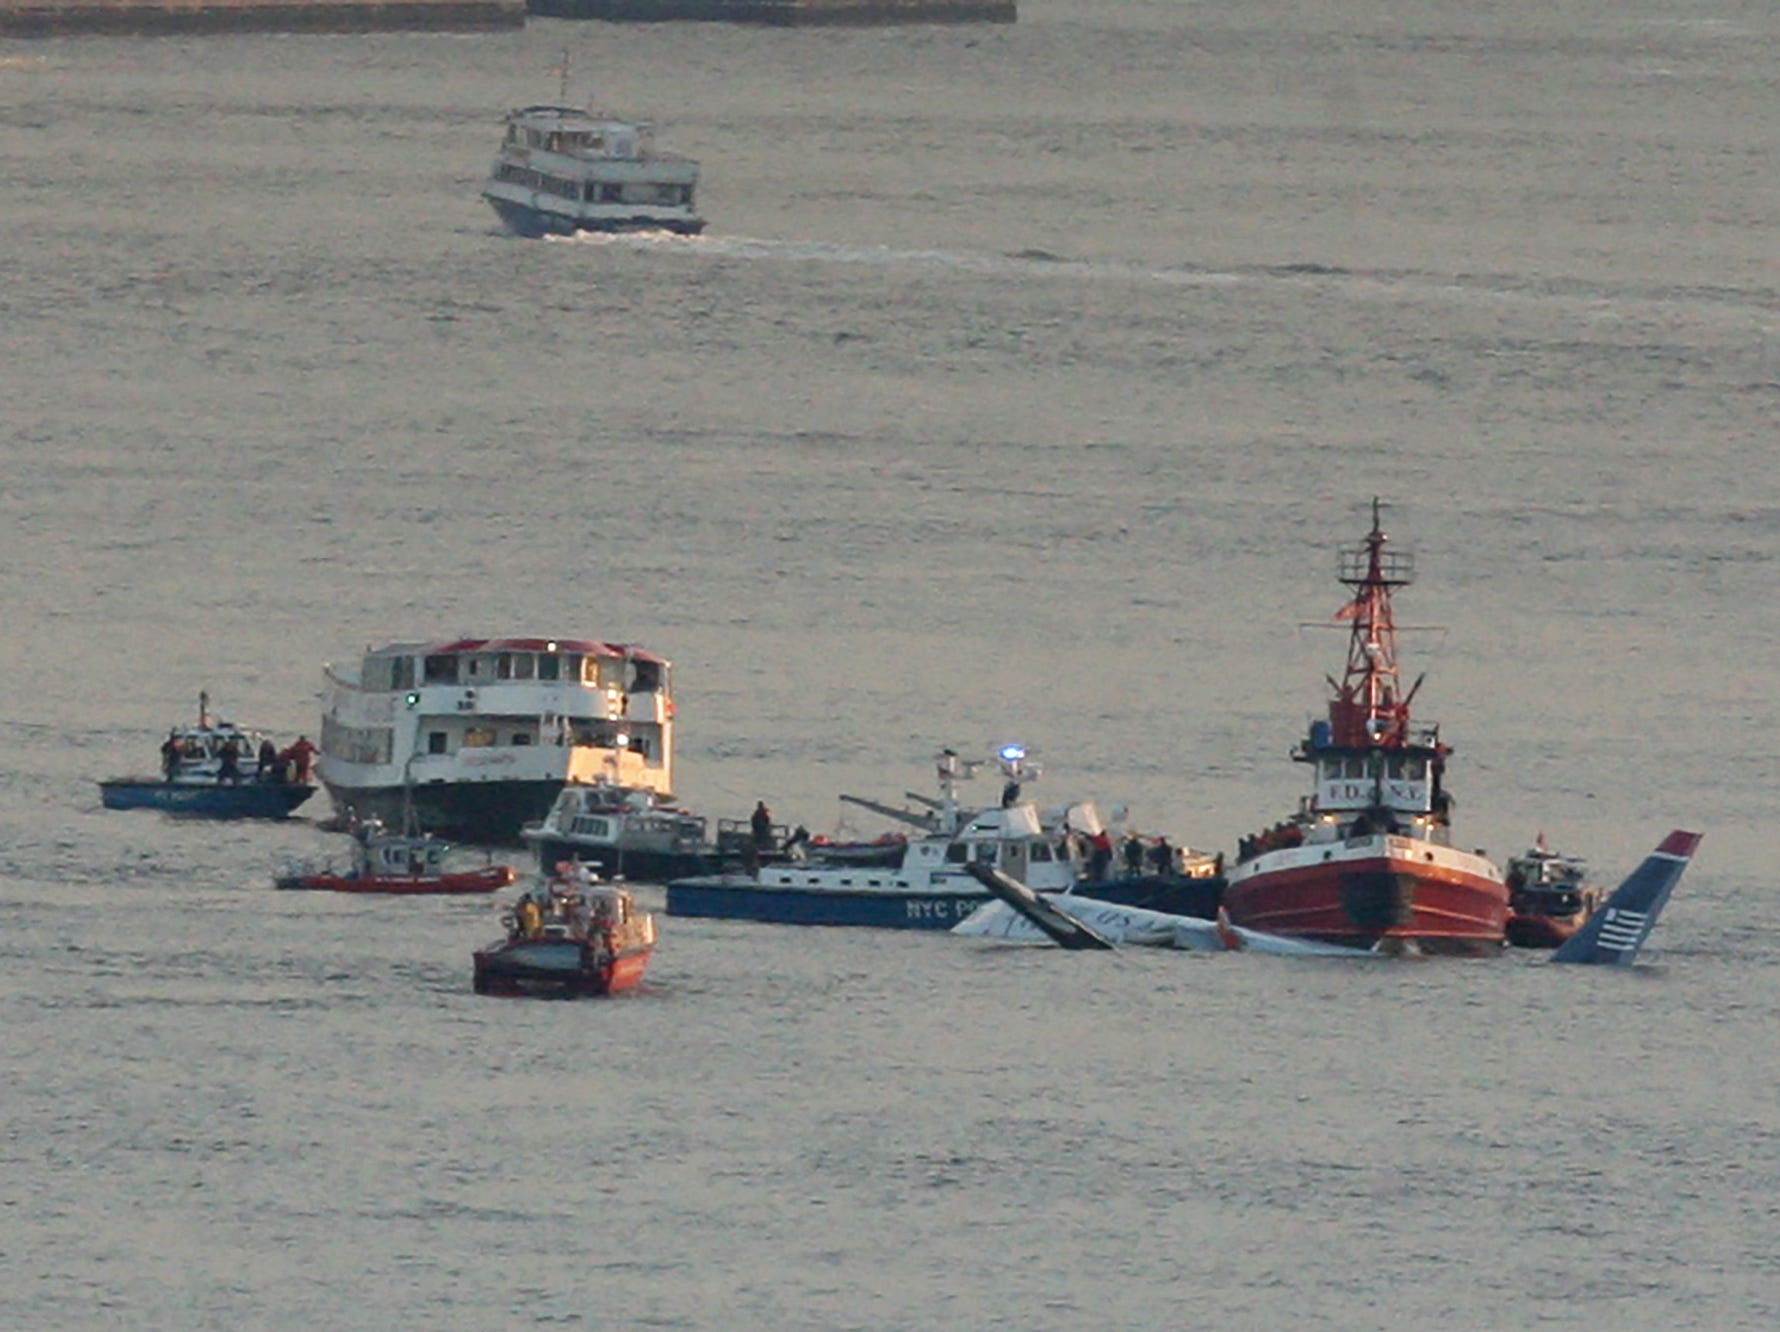 View of the US Airways plane surrounded by emergency crews on the Hudson River just south of Weehawkin.